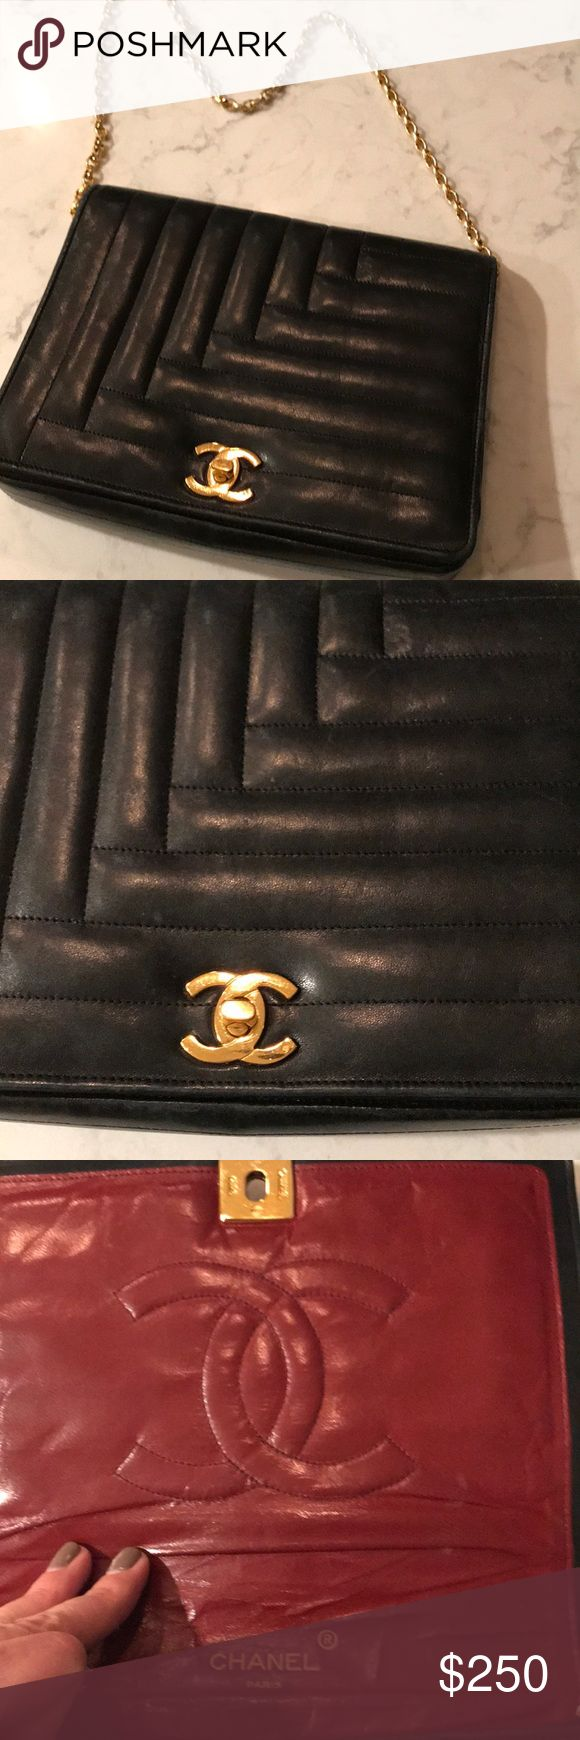 "Vintage Chanel Bag Classic Chanel bag passed down from my great aunt. Nice black leather with a red interior. Definitely an older bag, but still fun to wear. Since passed down, no paperwork. Please feel free to ask questions.  Dimensions: Length - 8 3/4"" Height - 7"" Chain = 25"" CHANEL Bags"